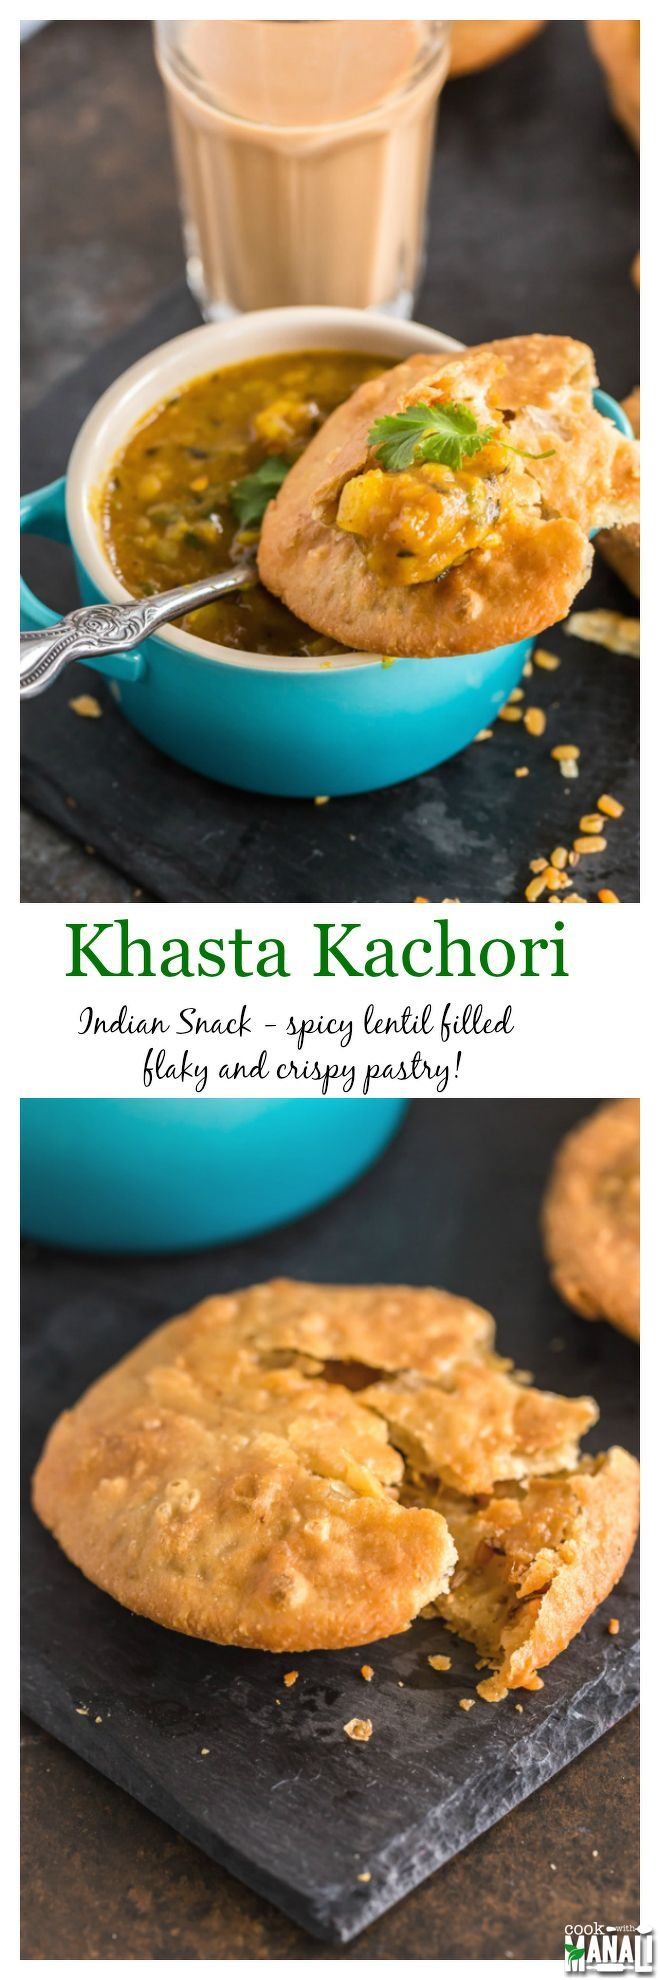 Authentic Khasta Kachori - Urad Dal Kachori - Cook With Manali, ,